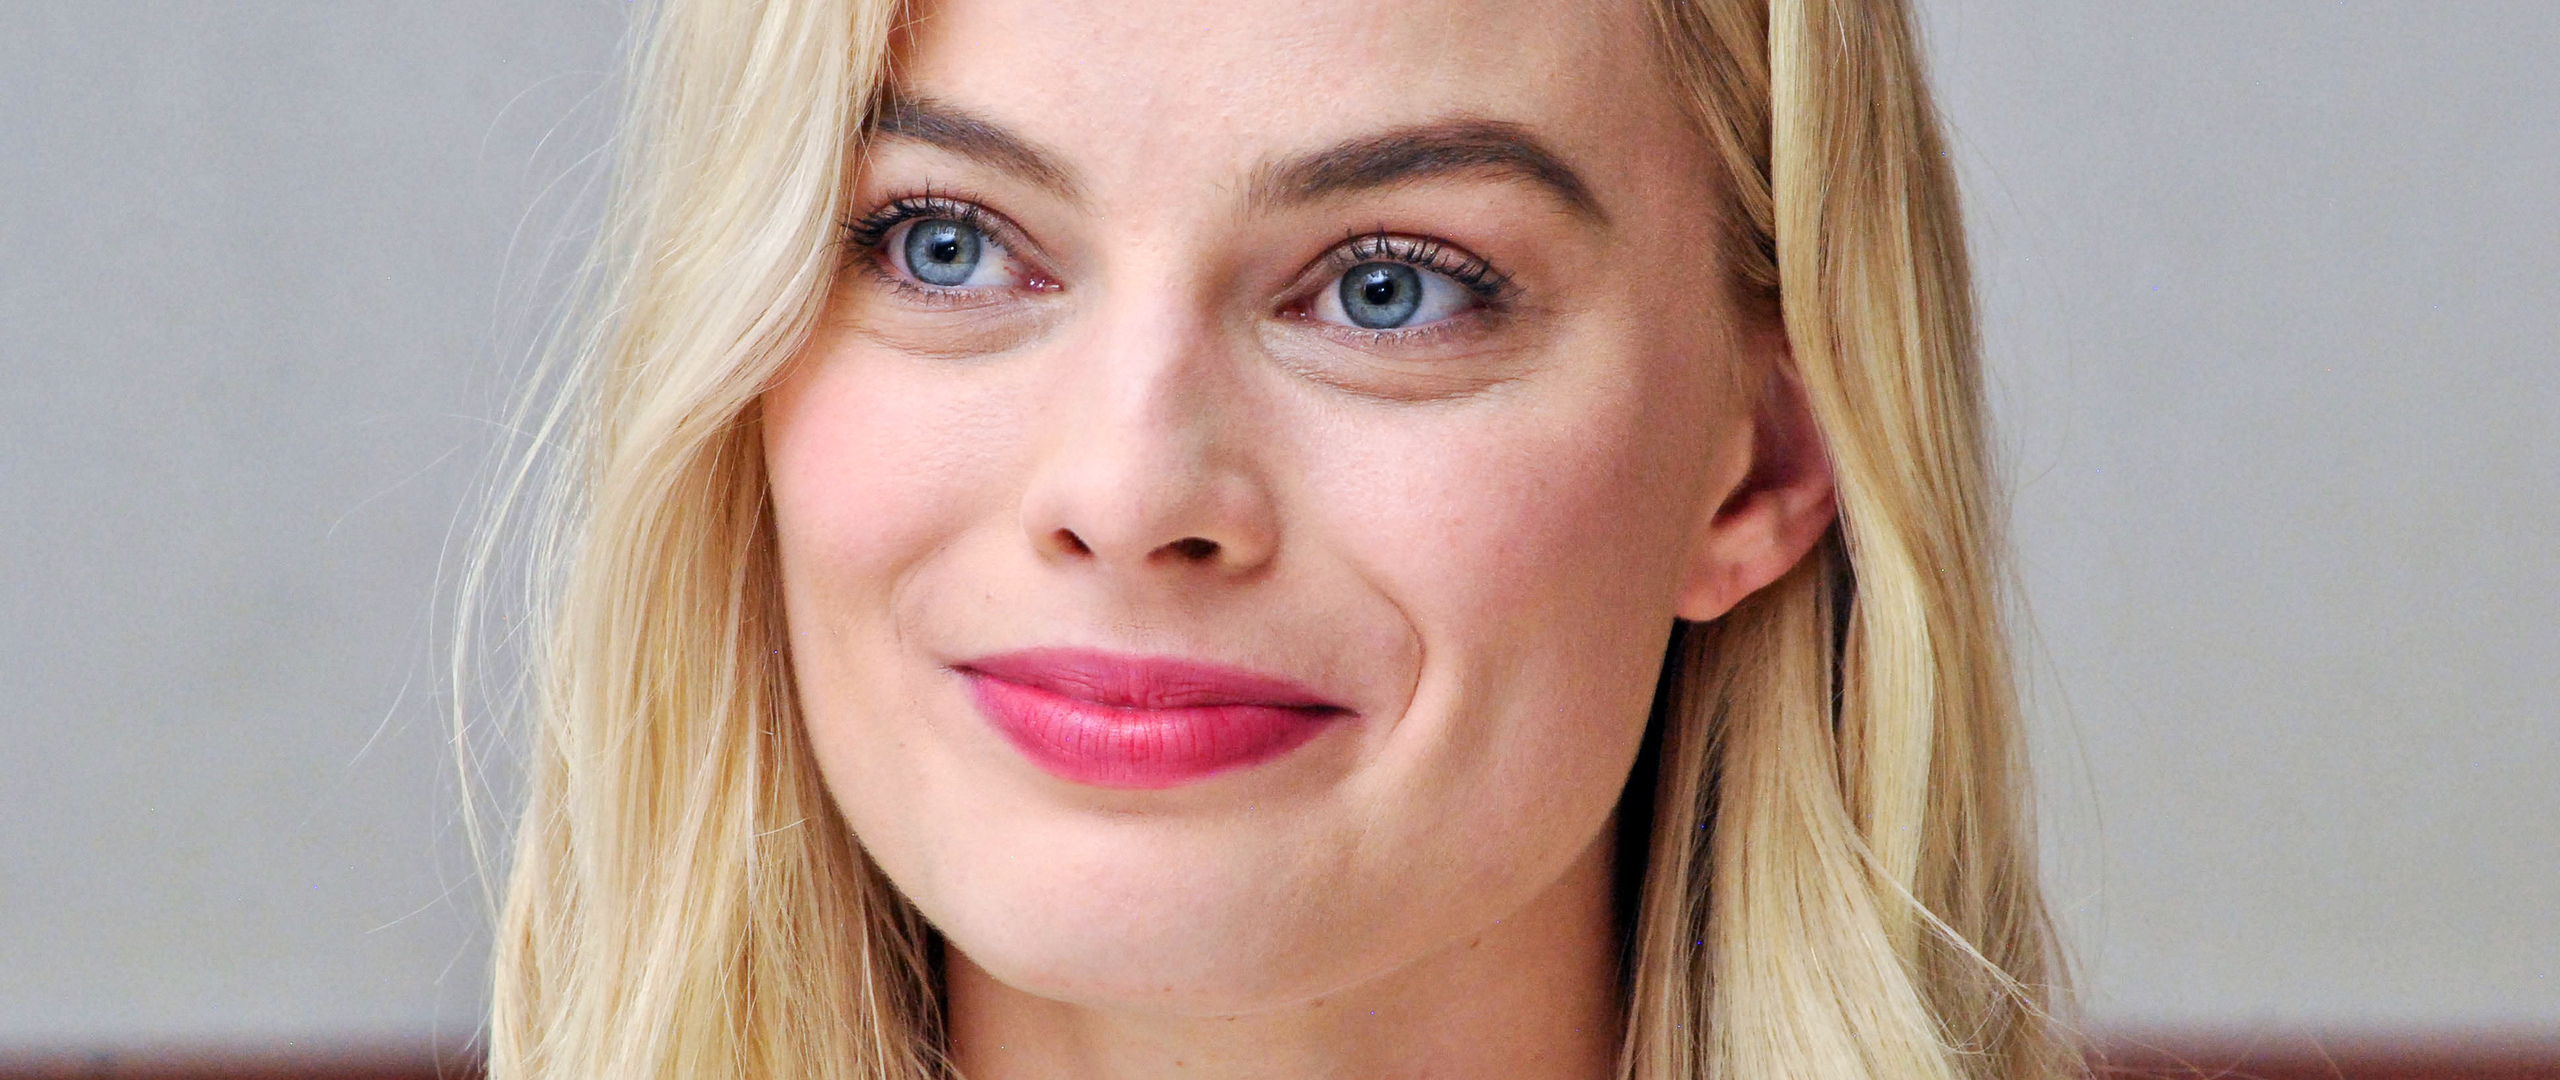 margot-robbie-smiling-4k-9s.jpg